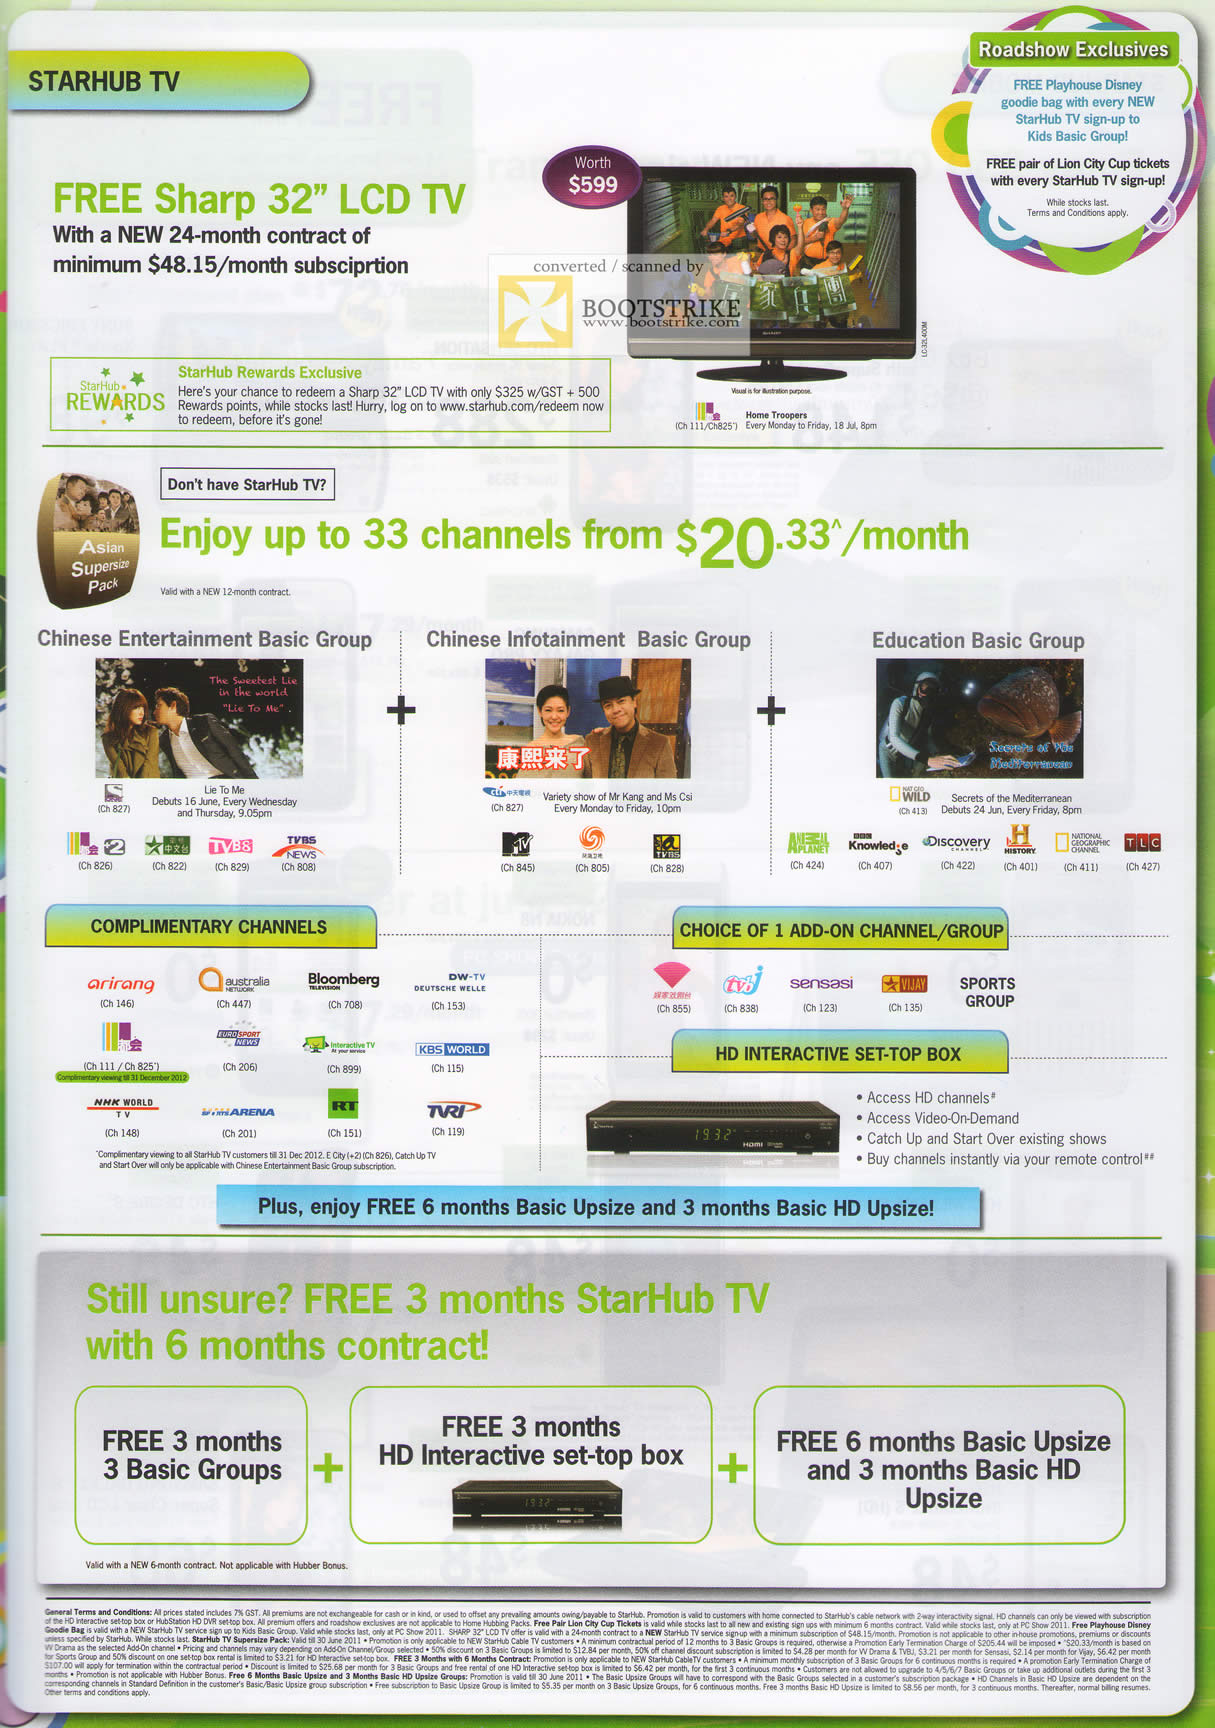 Starhub TV Free Sharp 32 LCD TV Channels Lion City Cup